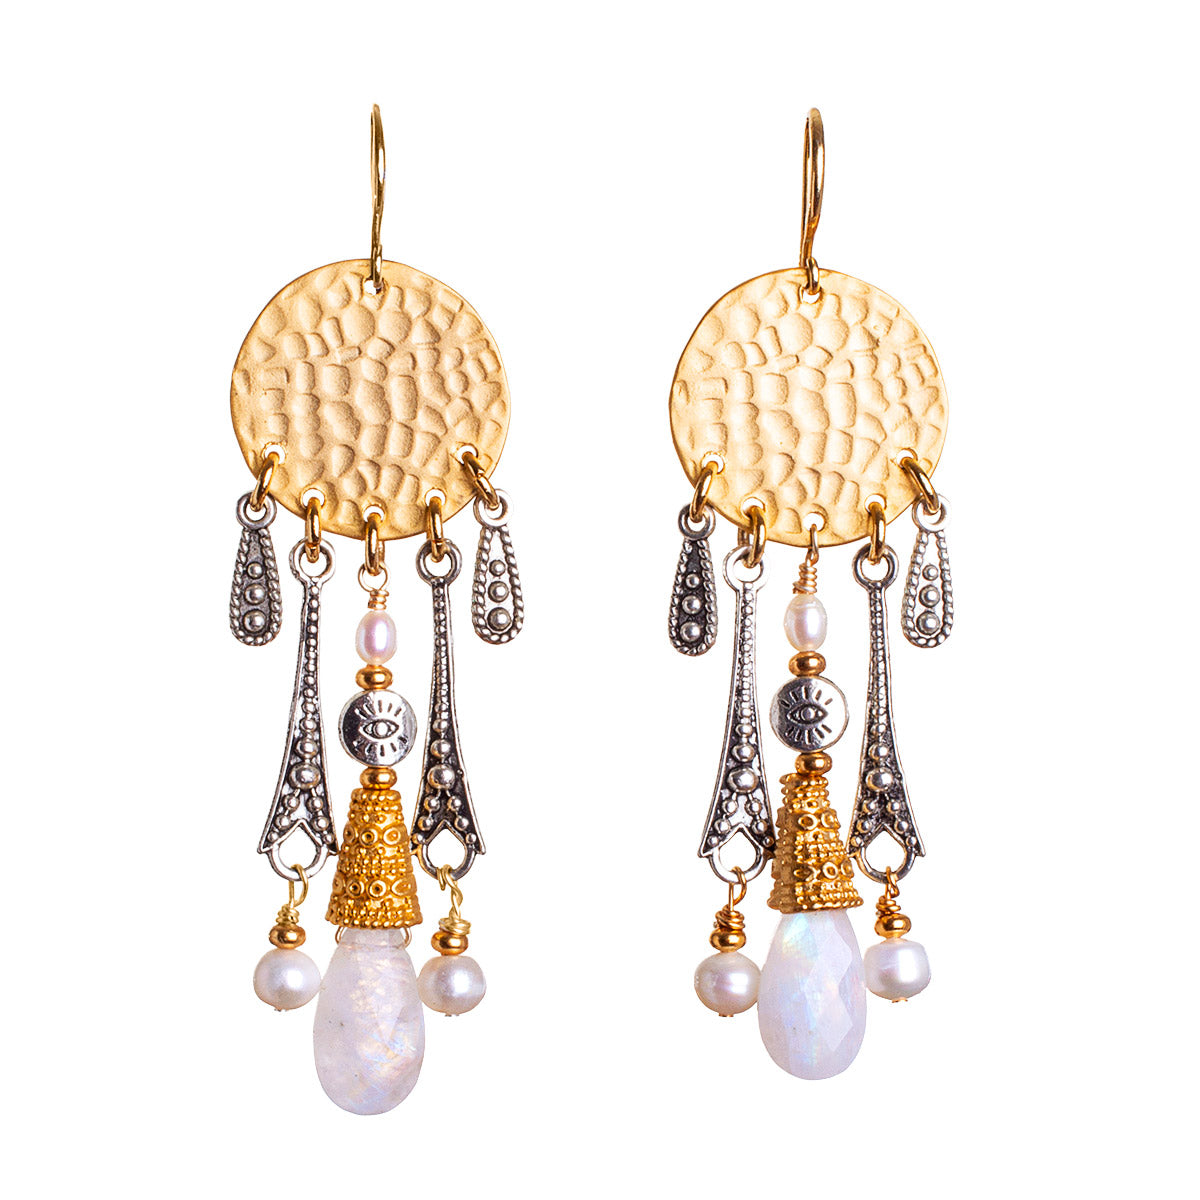 N°675 Living on Moontime Statement Earrings